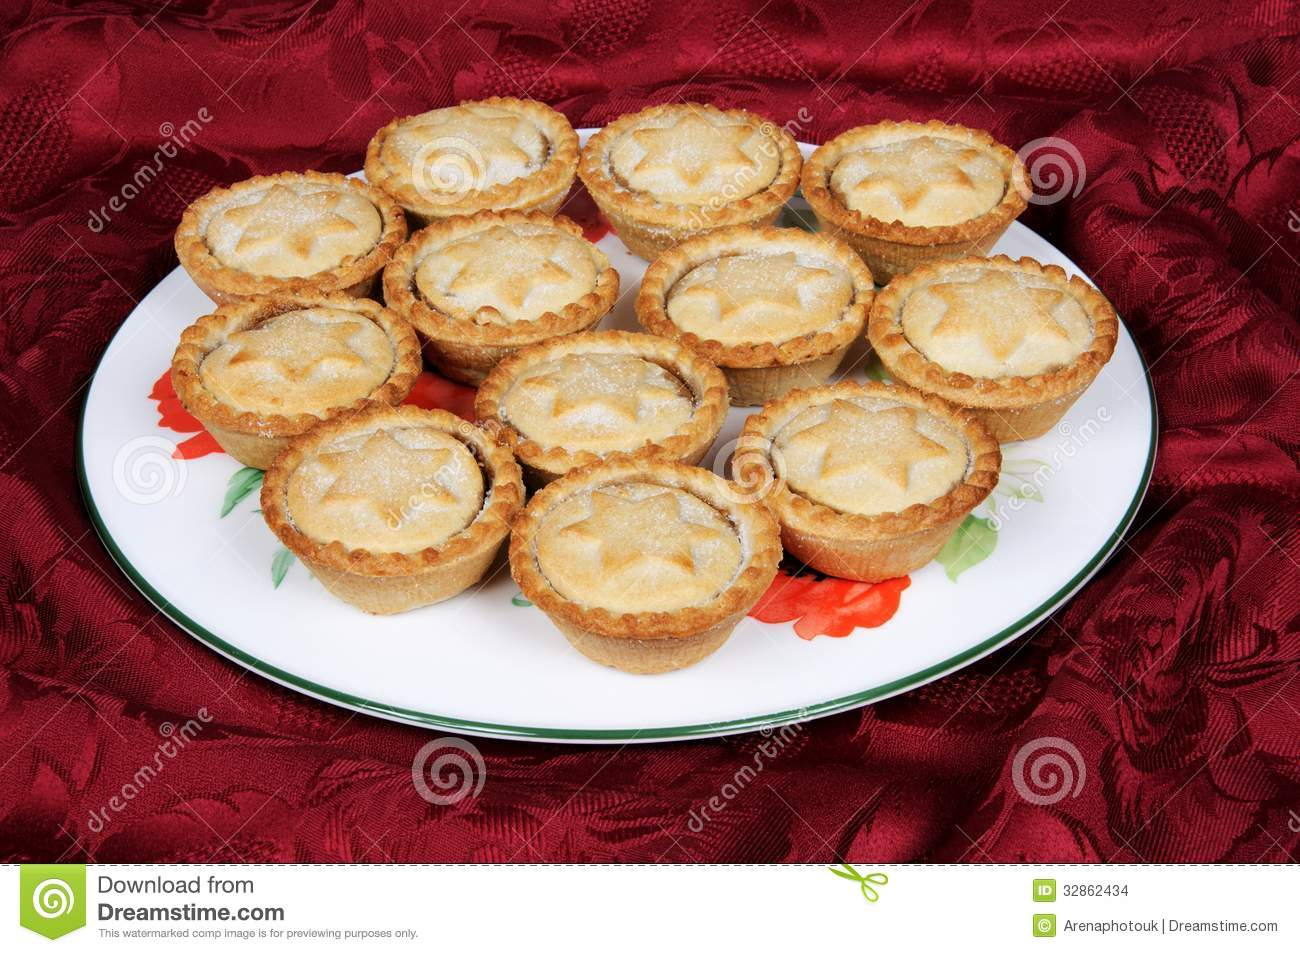 Plate of mince pies. & Plate of mince pies. stock photo. Image of deserts mince - 32862434